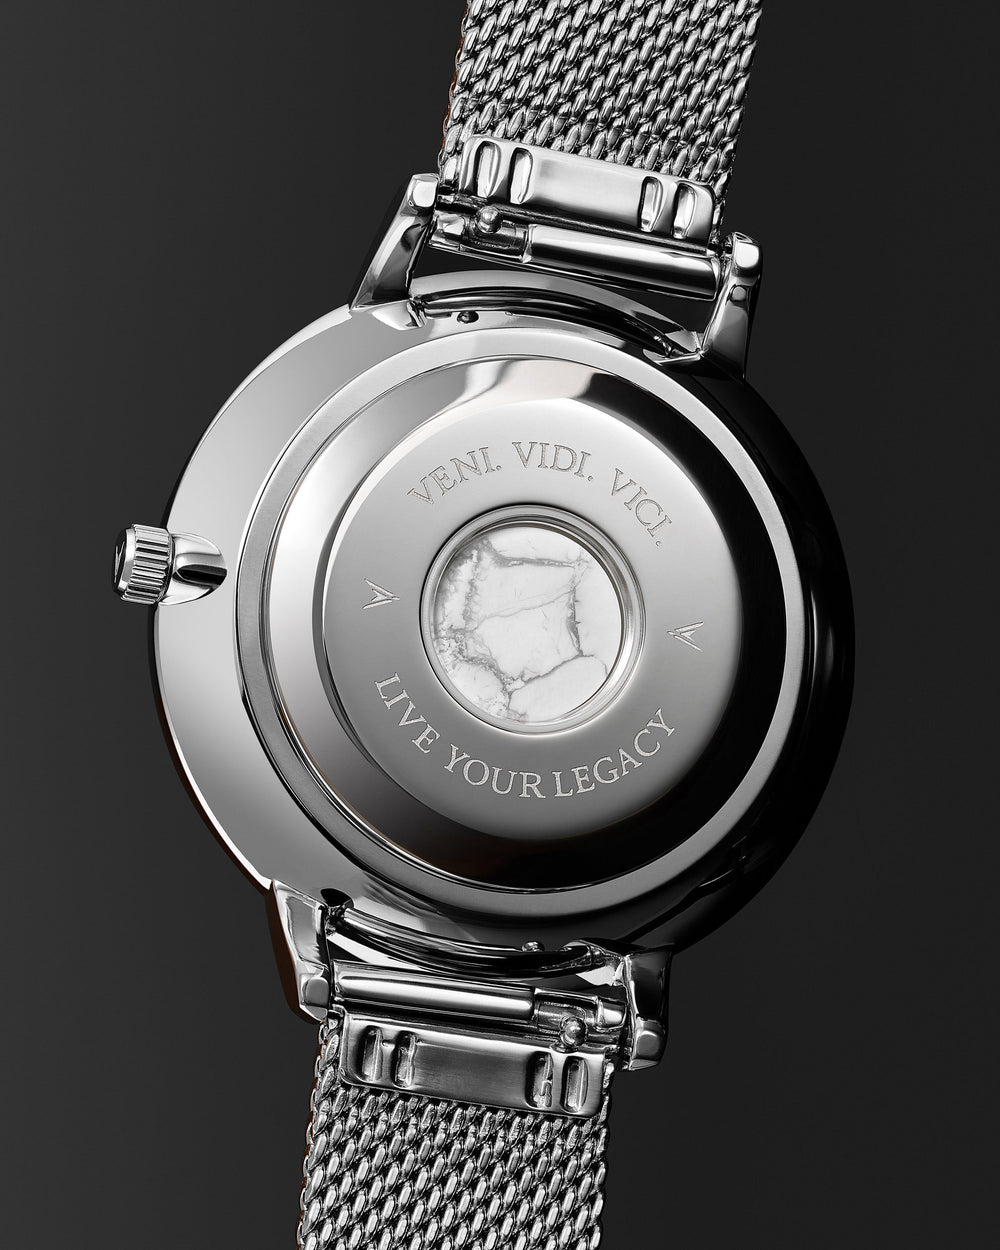 Eros Italian Marble and 316L Stainless Steel Caseback with Veni Vidi Vici Live Your Legacy Engraving